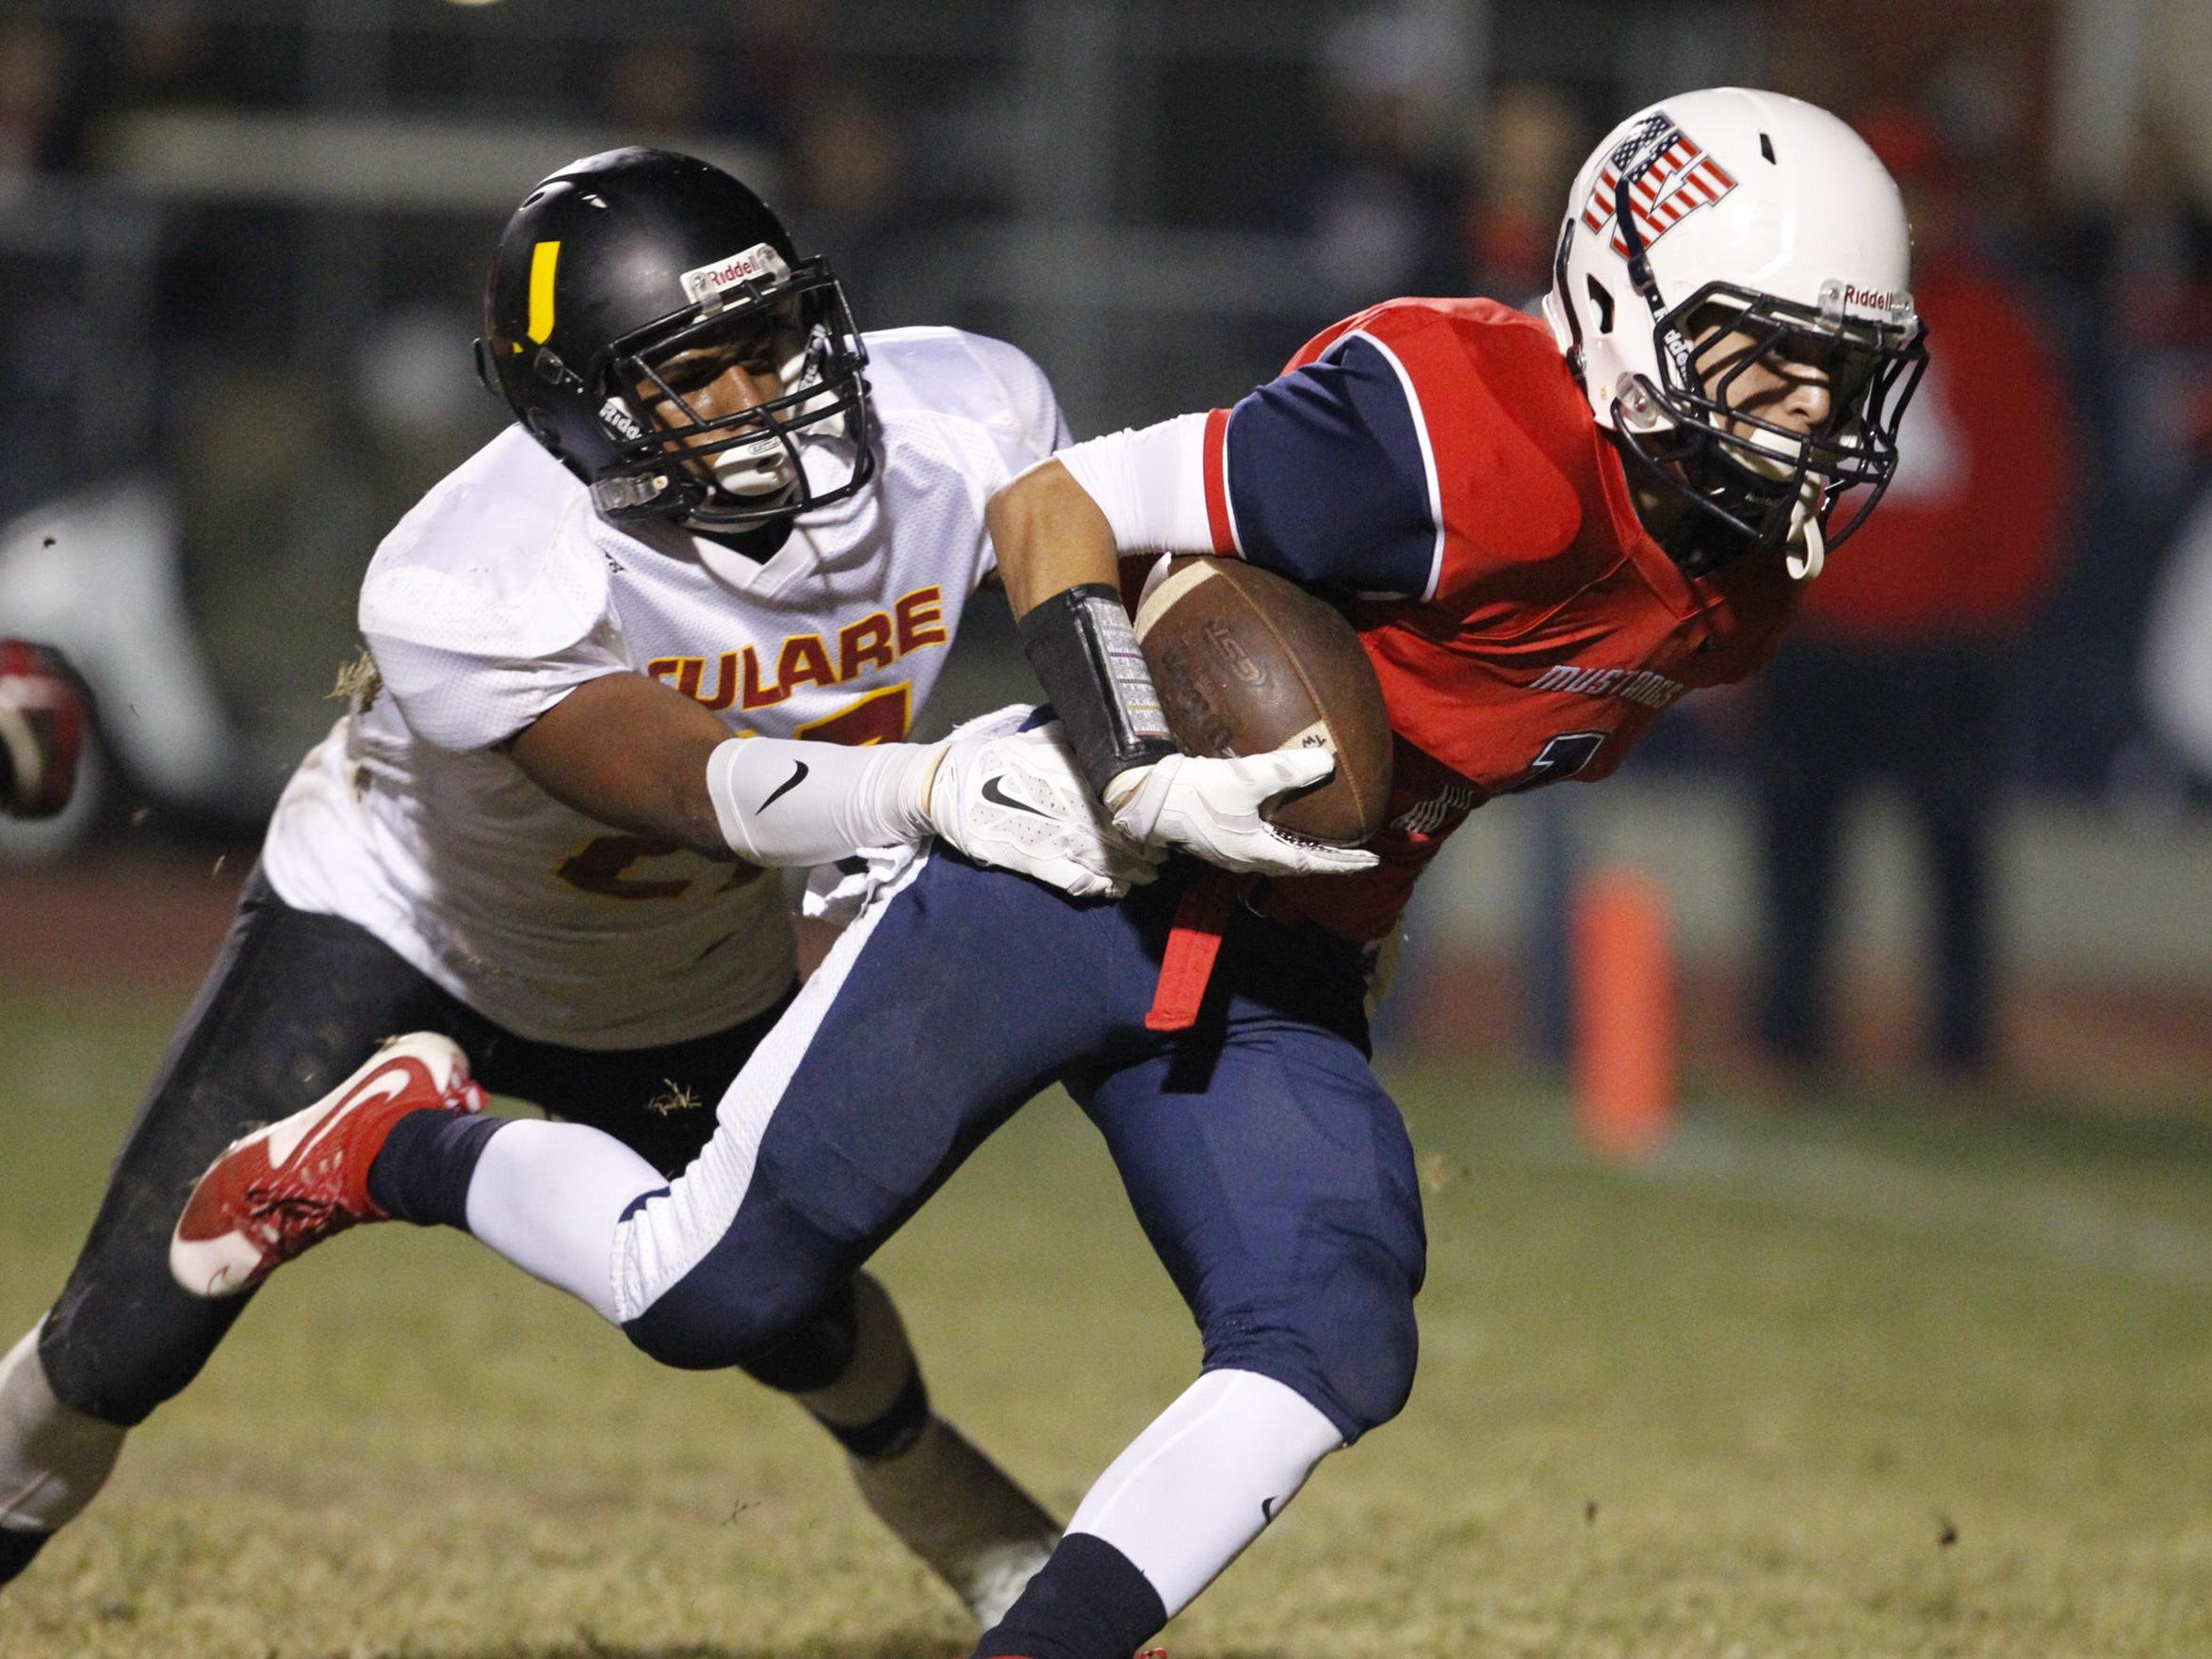 Tulare Union's Xavier Alexander tries to tackle Tulare Western's Josh Portillo during last week's Bell Game. Tulare Western hosts North on Friday in a Division III playoff game. Tulare Union hosts Sunnyside on Nov. 20.